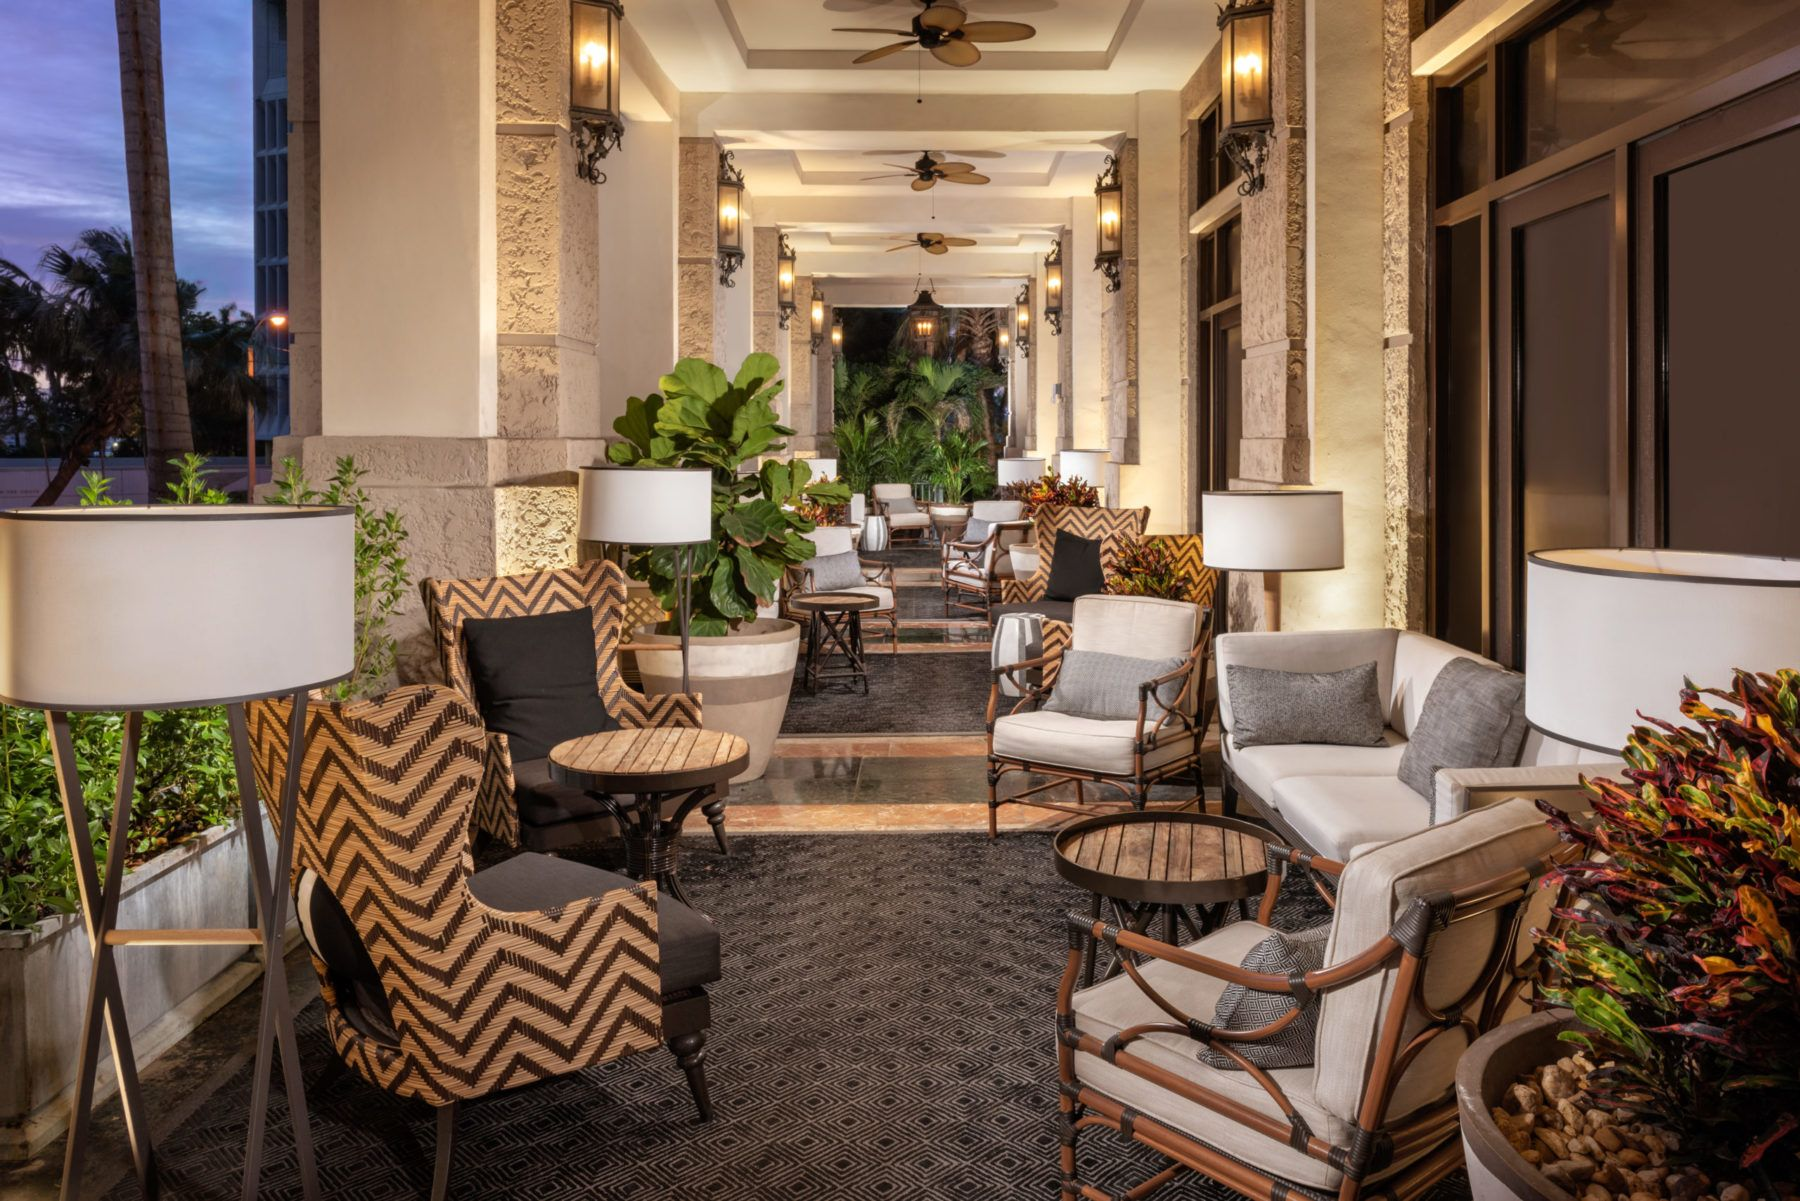 Outside patio with lounge furniture and palm trees at The Commodore